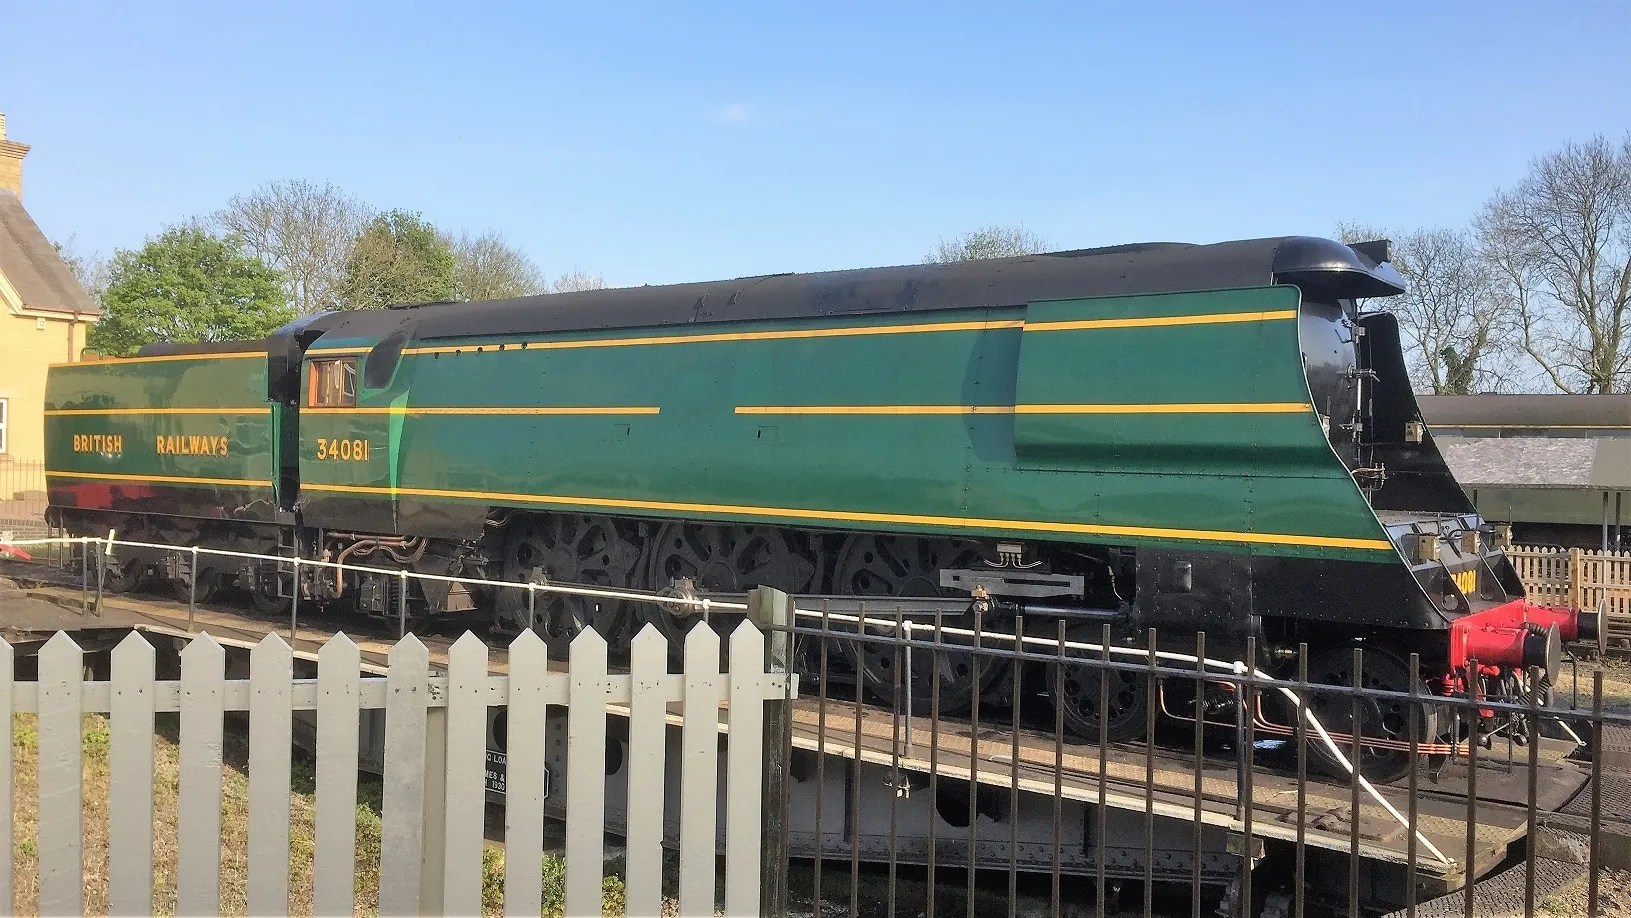 34081 92 Squadron on the turntable at Wansford on the Nene Valley Railway